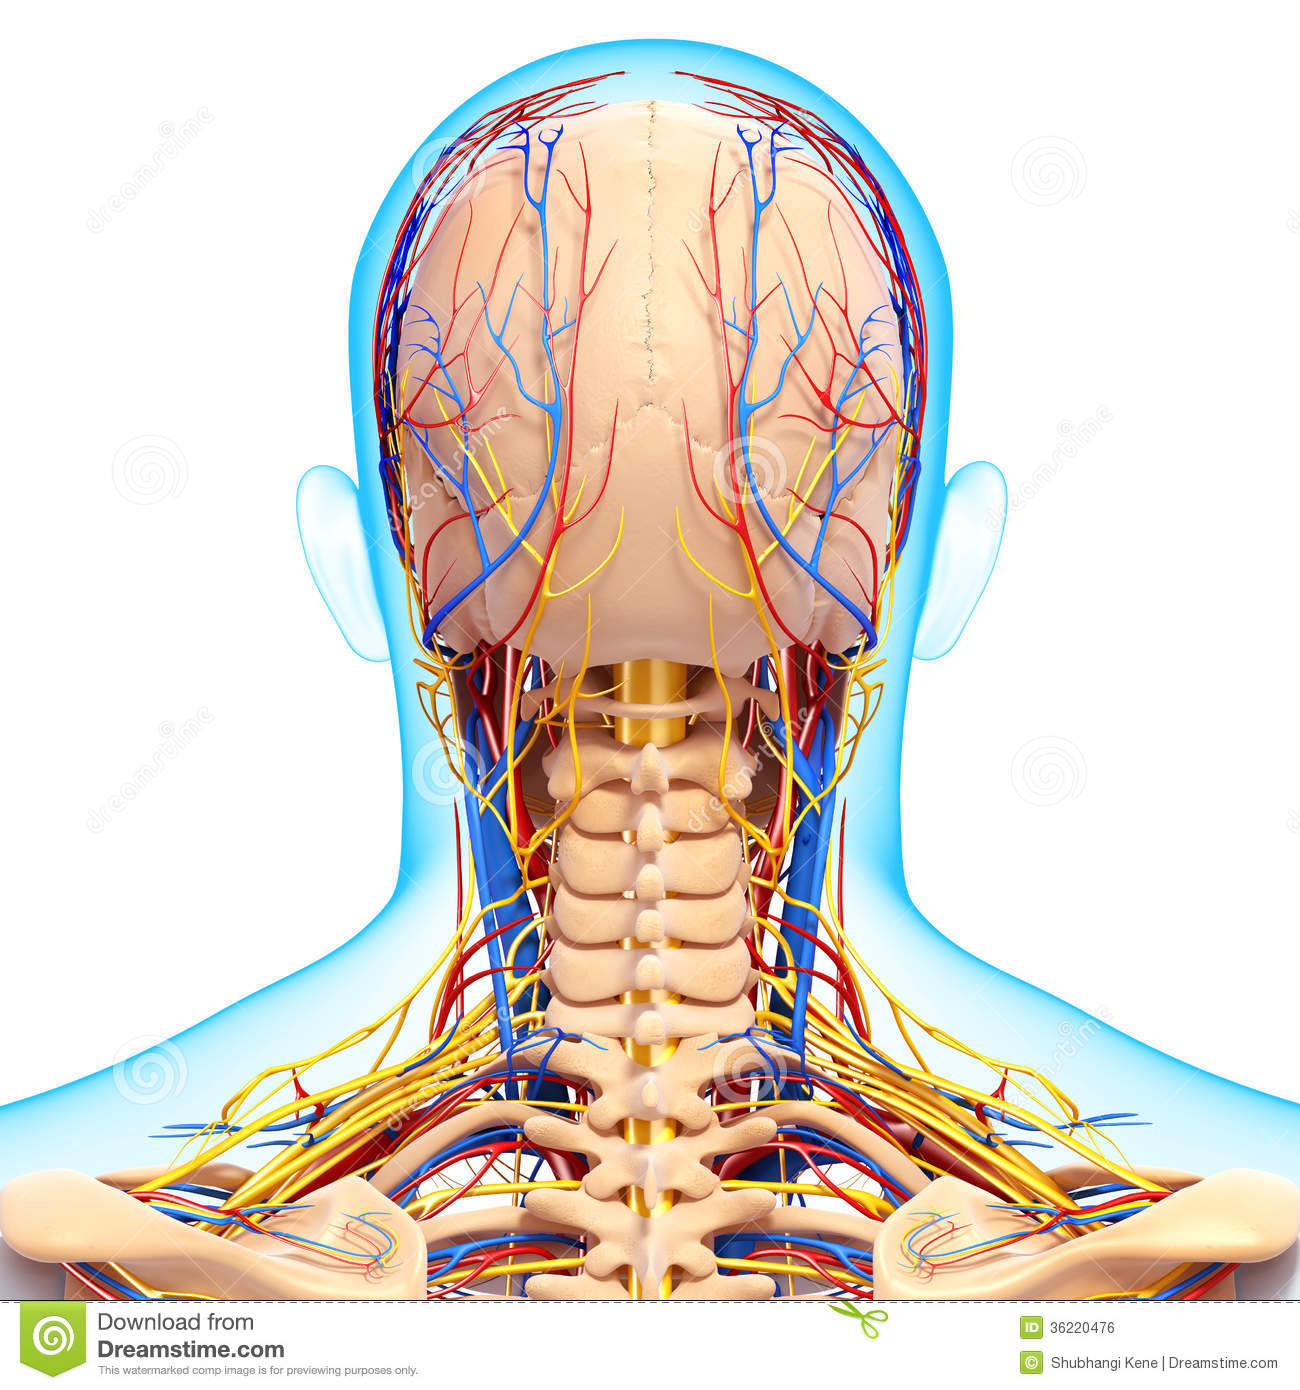 diagram of human cartoon the12volt com wiring circulatory and nervous system brain stock illustration - image: 36220476